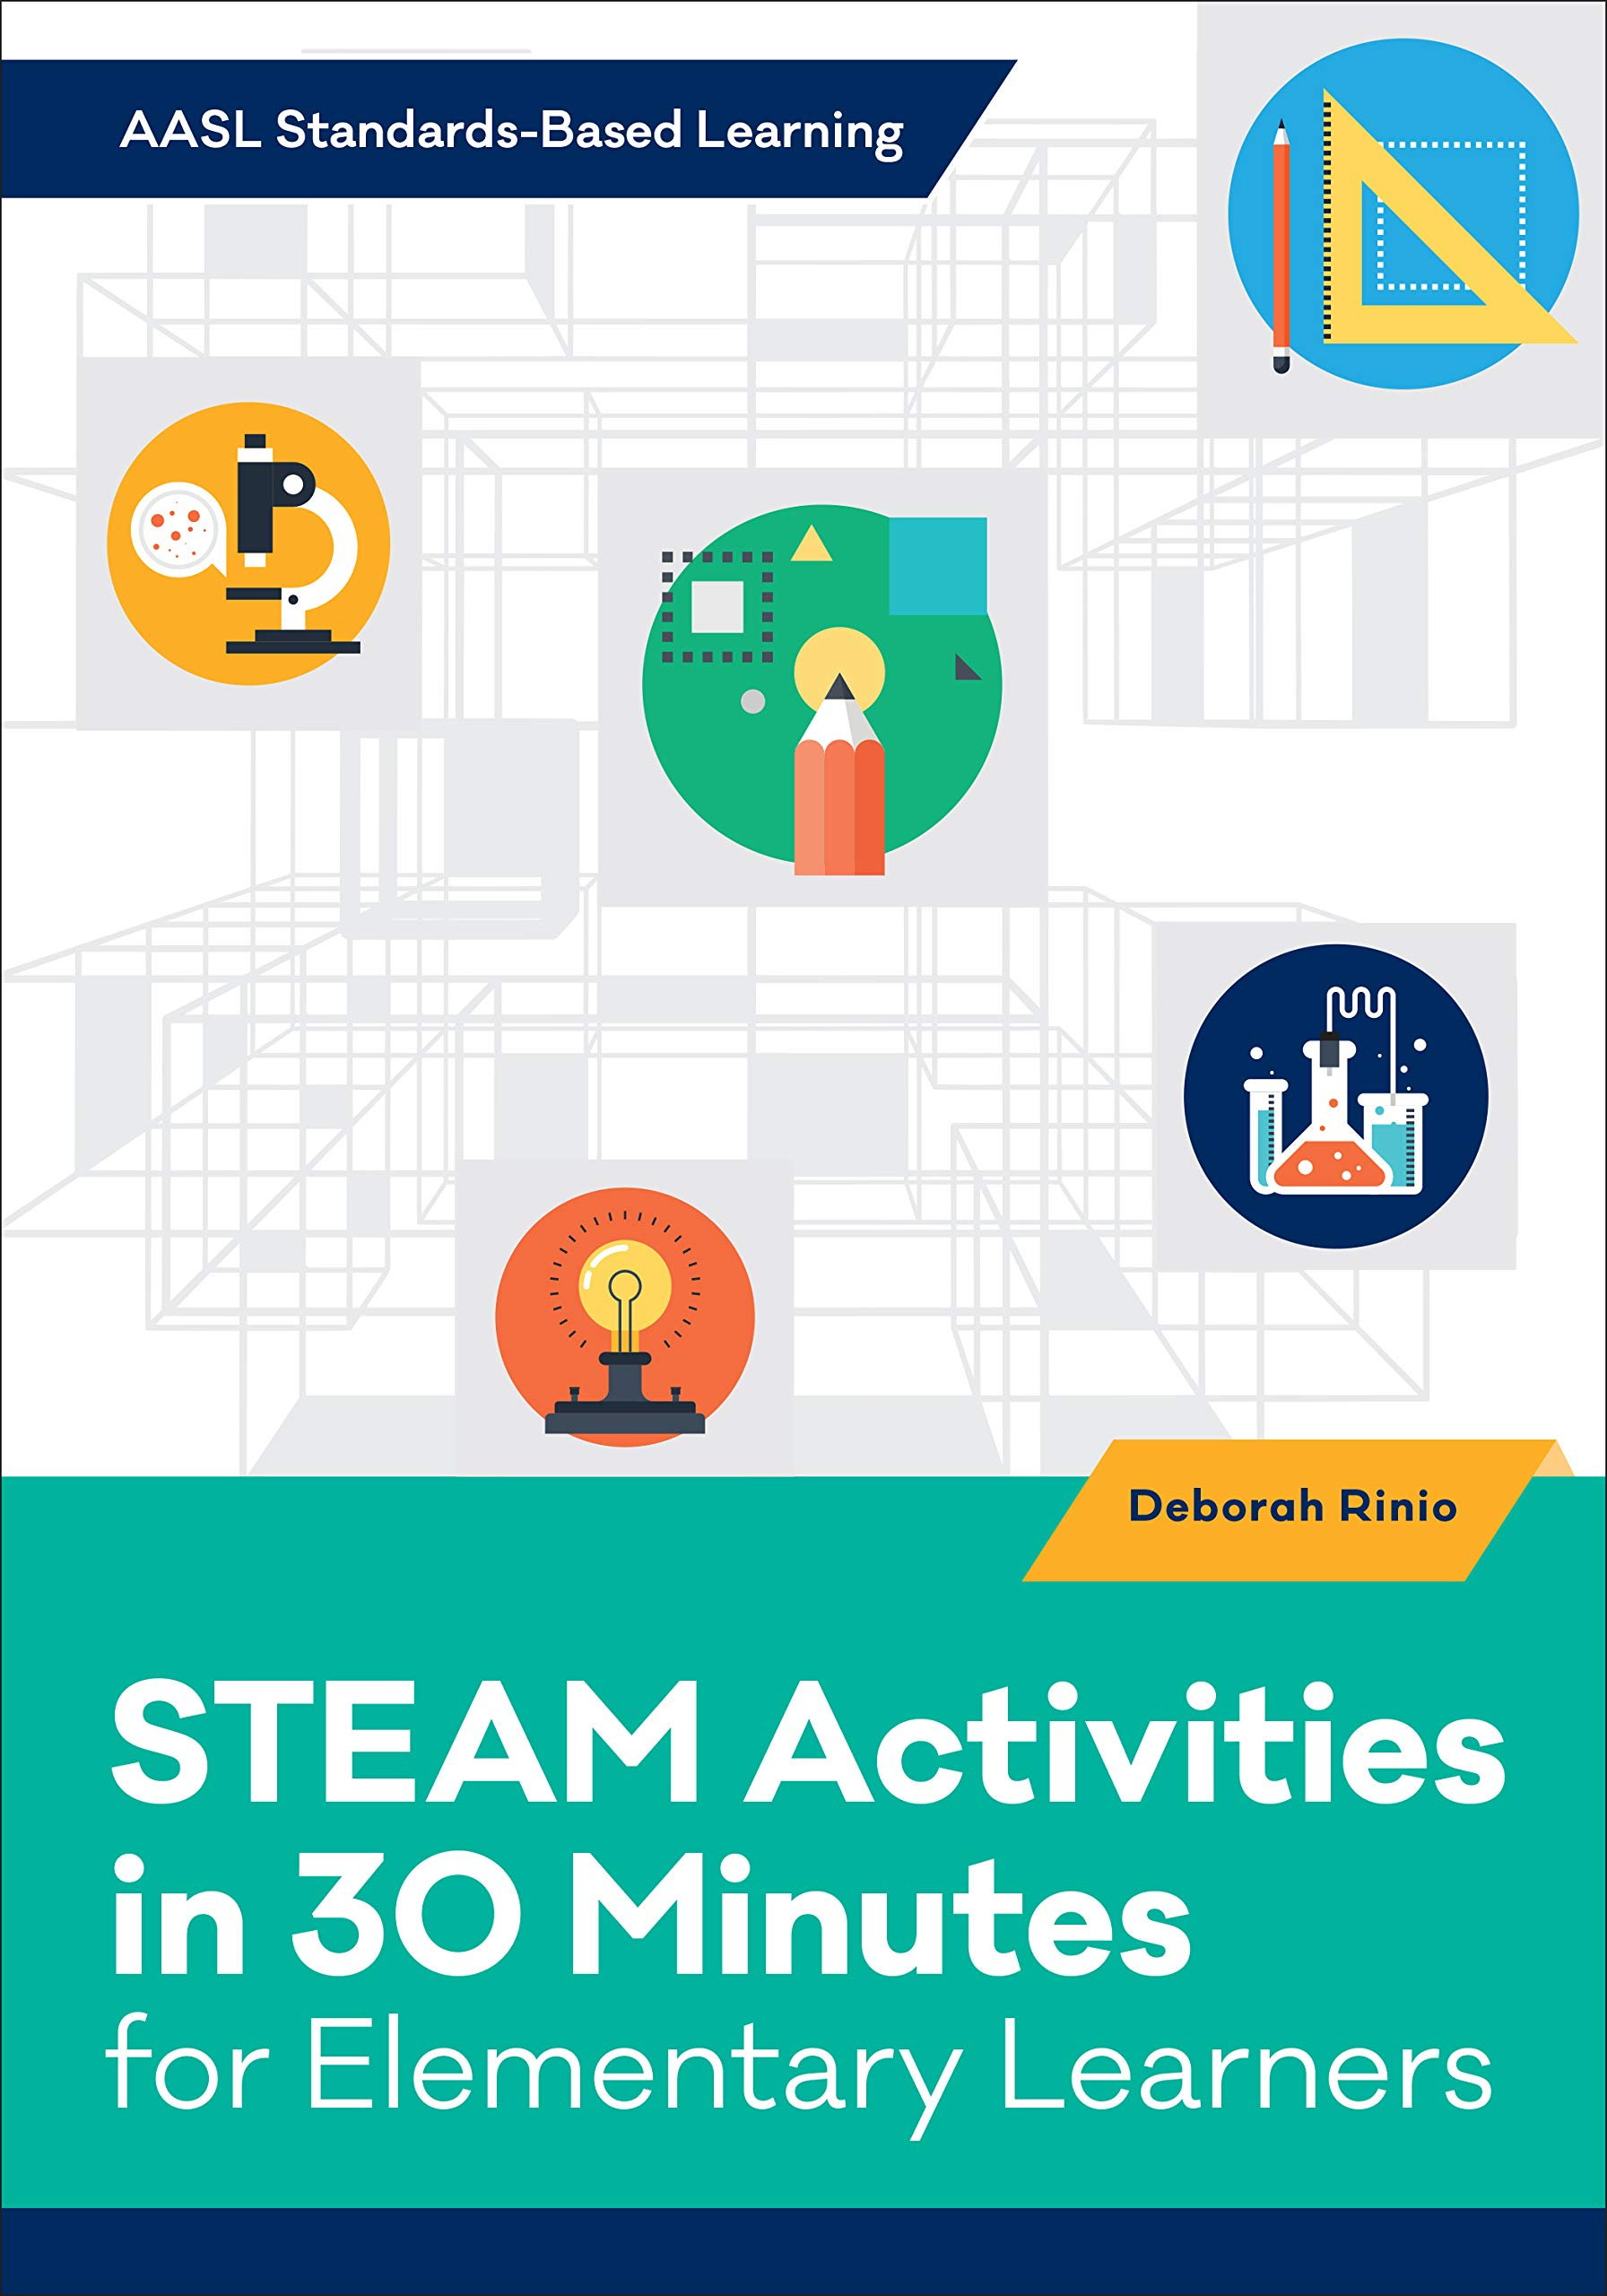 STEAM Activities in 30 ­Minutes for Elementary Learners